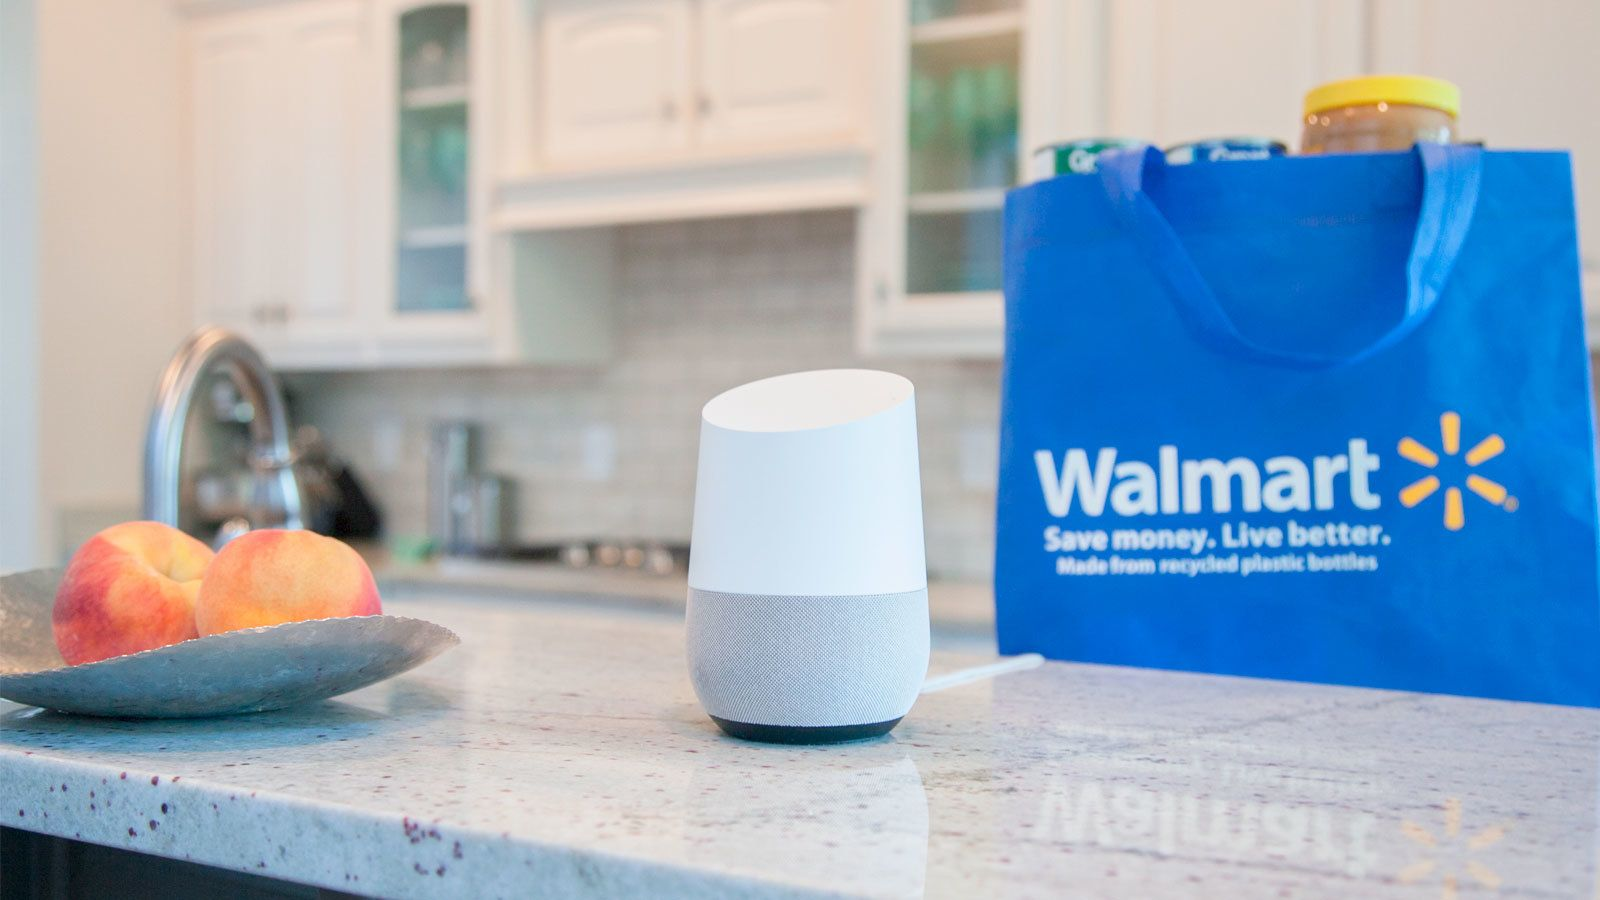 Google And Walmart Announce A Partnership To Take On Amazon